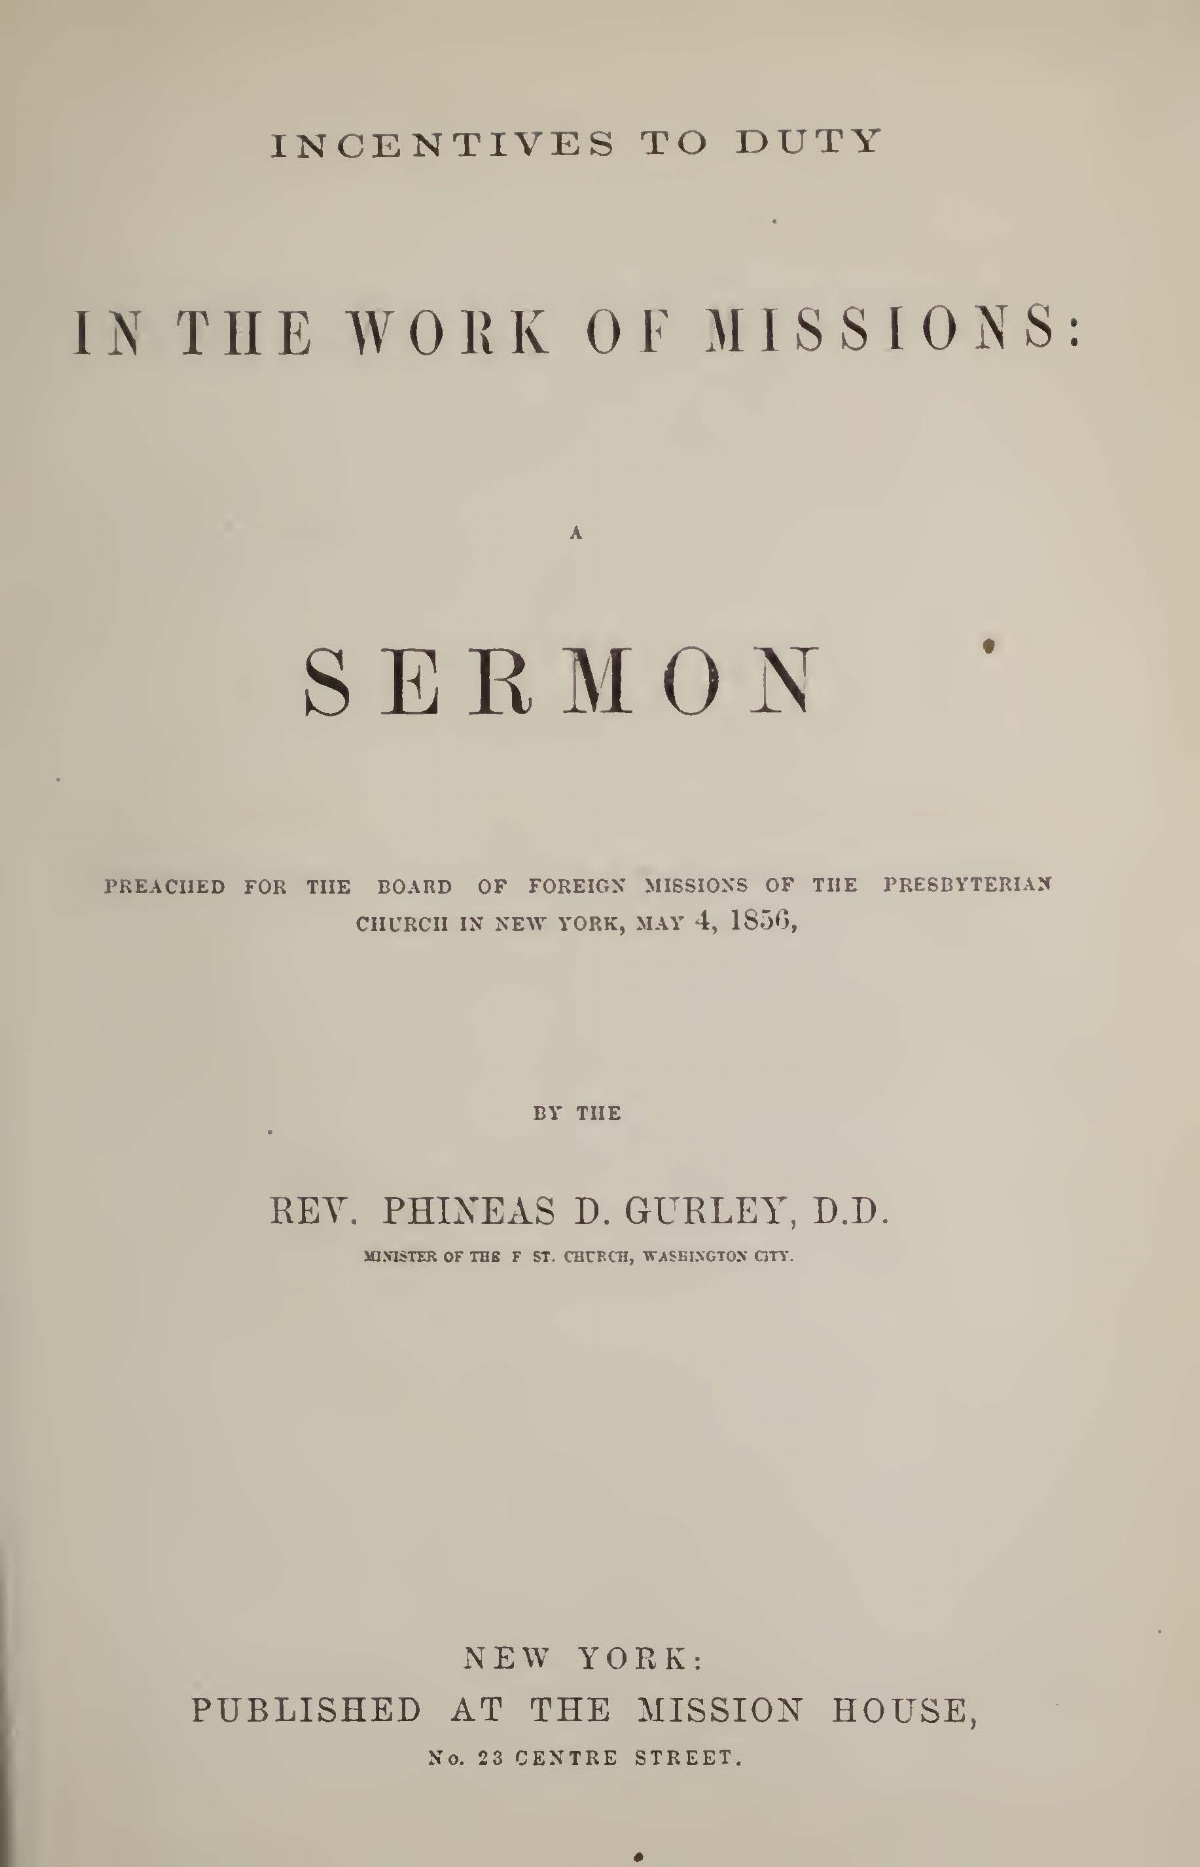 Gurley, Phineas Densmore, Incentives to Duty in the Work of Missions Title Page.jpg